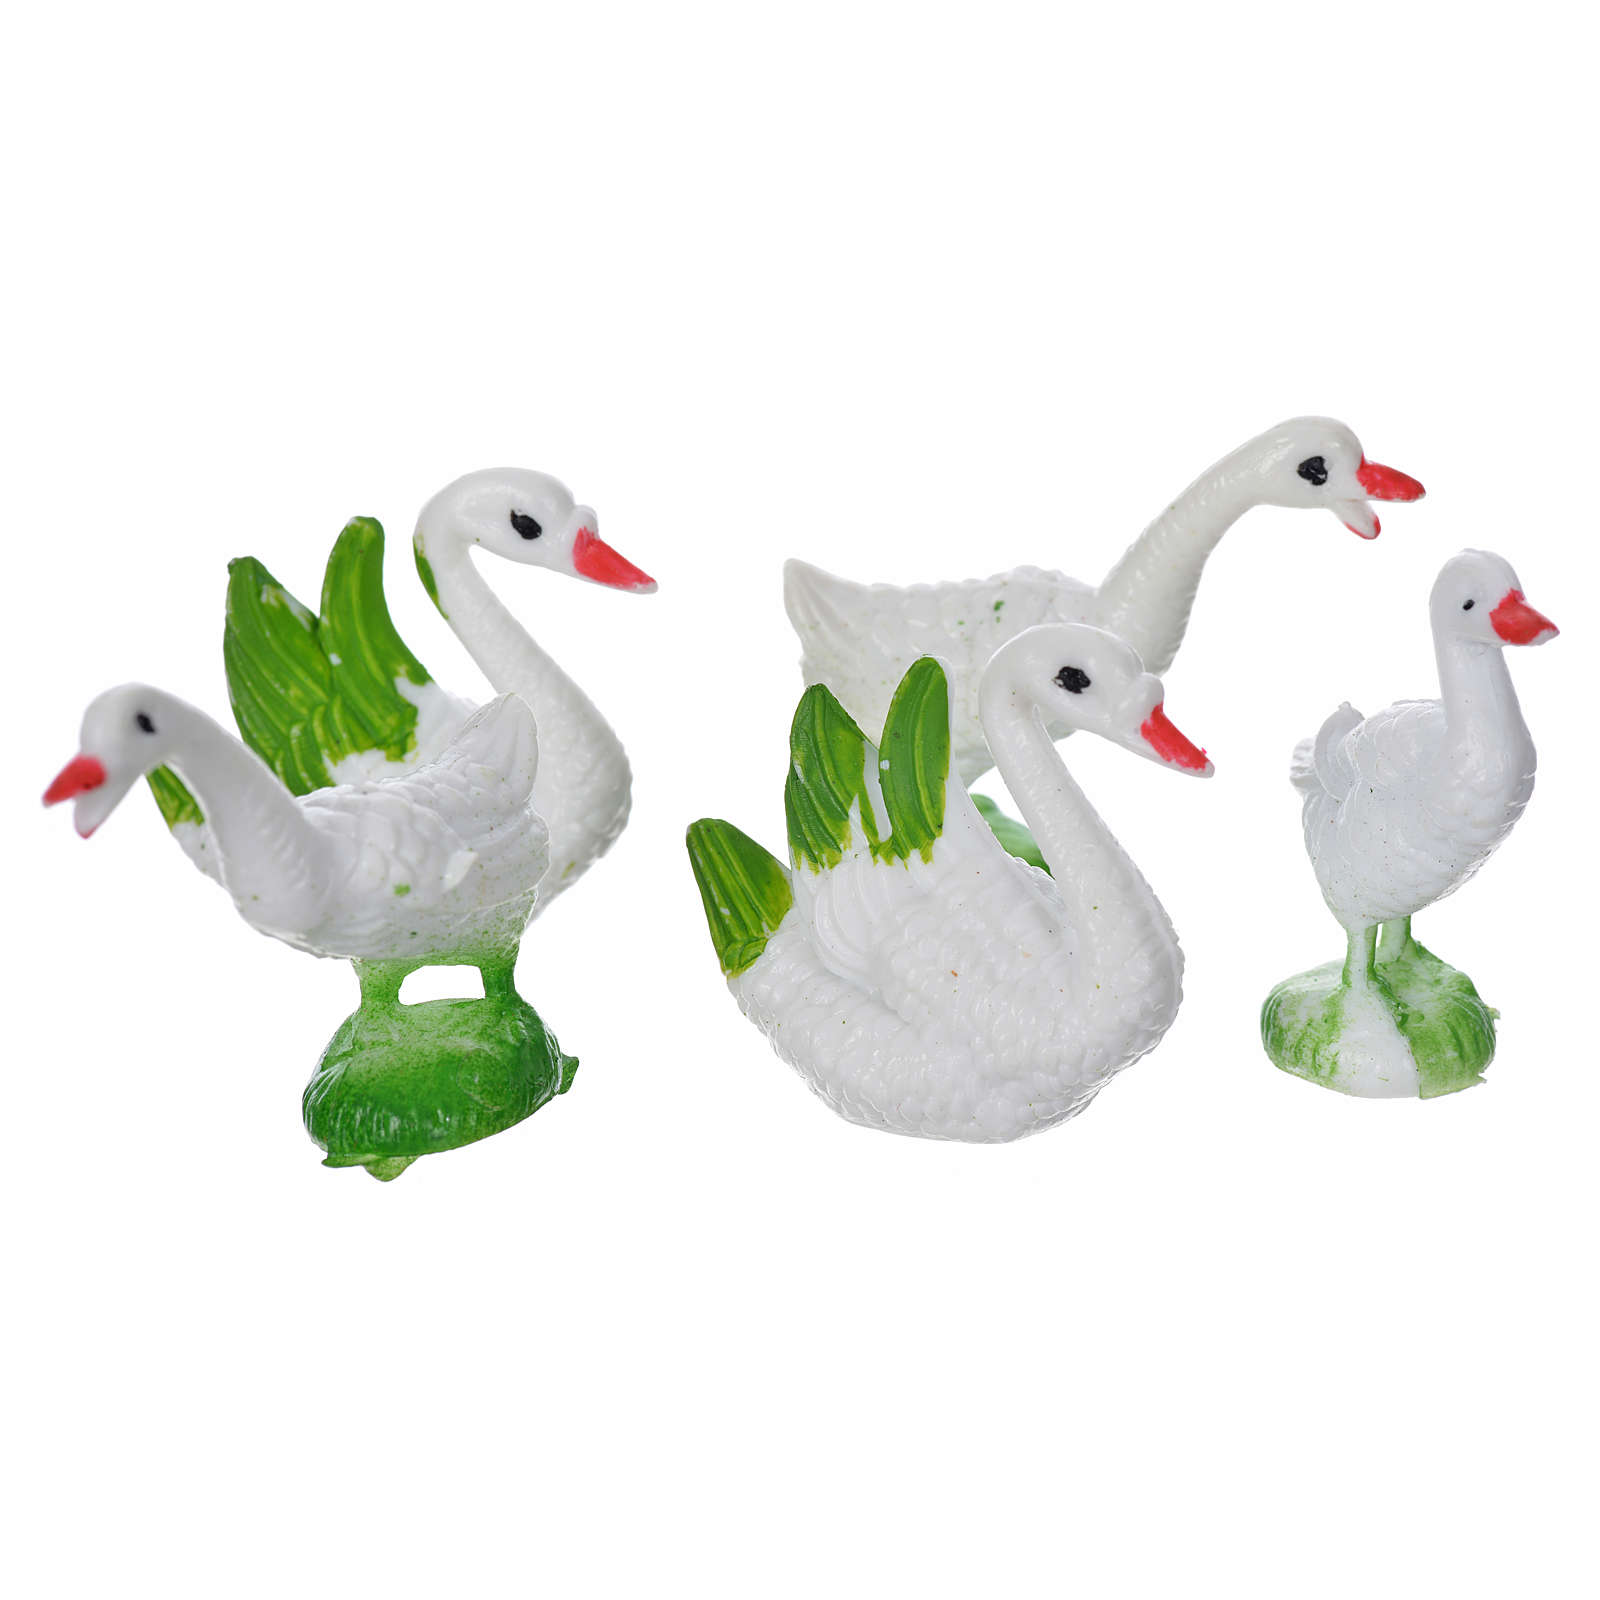 Nativity figurine, geese 5pcs 3